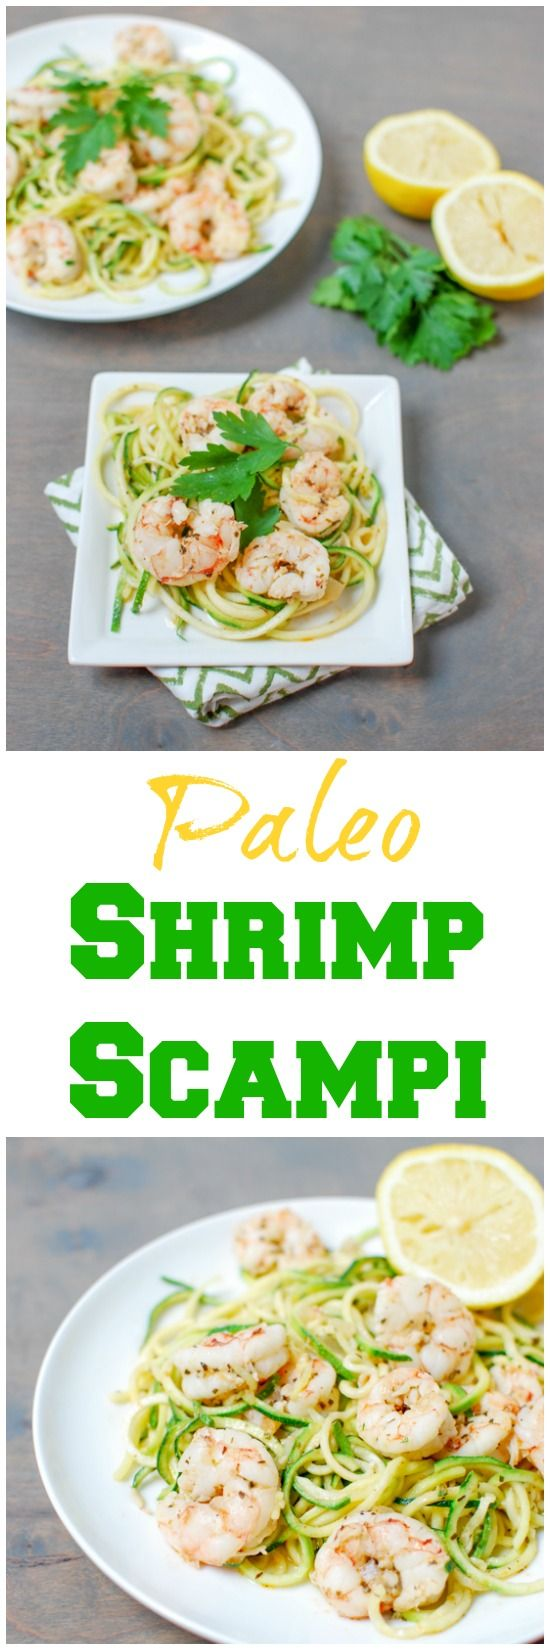 This Paleo Shrimp Scampi is made with just five ingredient (plus herbs) and is ready in 15 minutes. Light and refreshing, it's the perfect summer dinner!